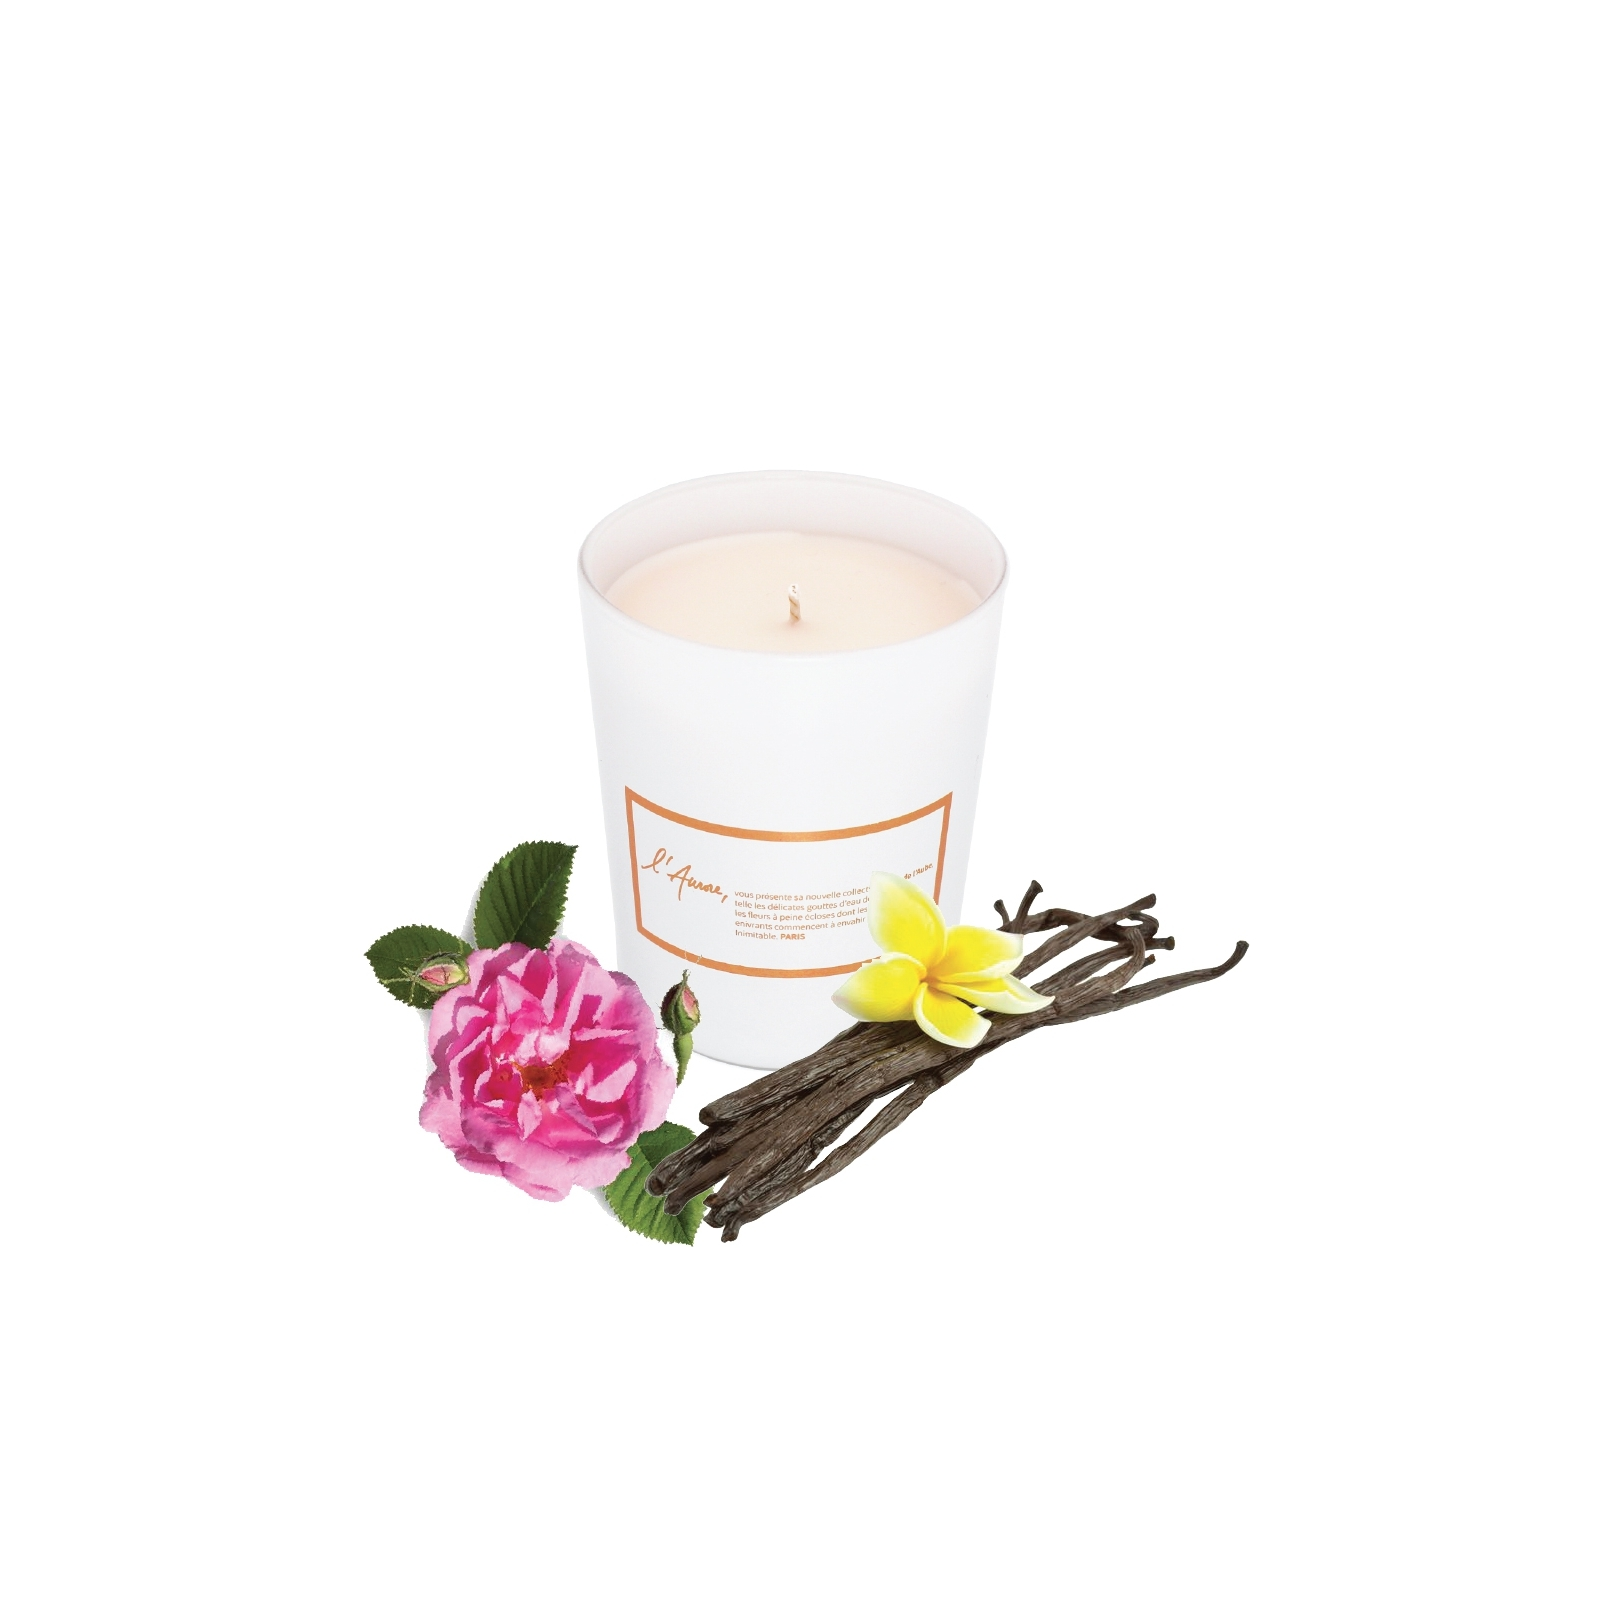 Scented candle EPICE D'ORCHIDEE (vanilla, musc)